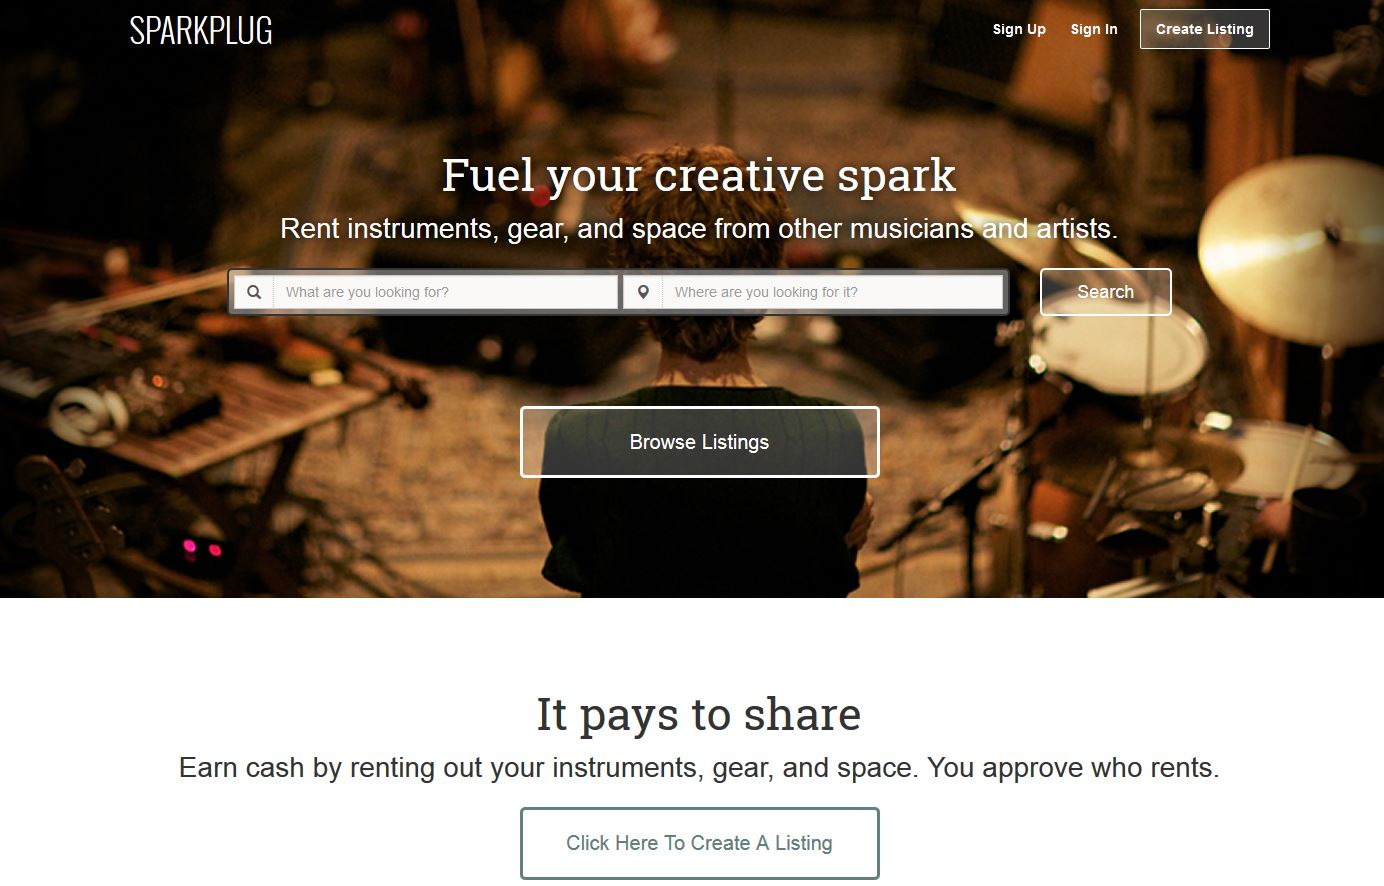 Sparkplug: Airbnb Clone That Helps Musicians Rent Out Gear